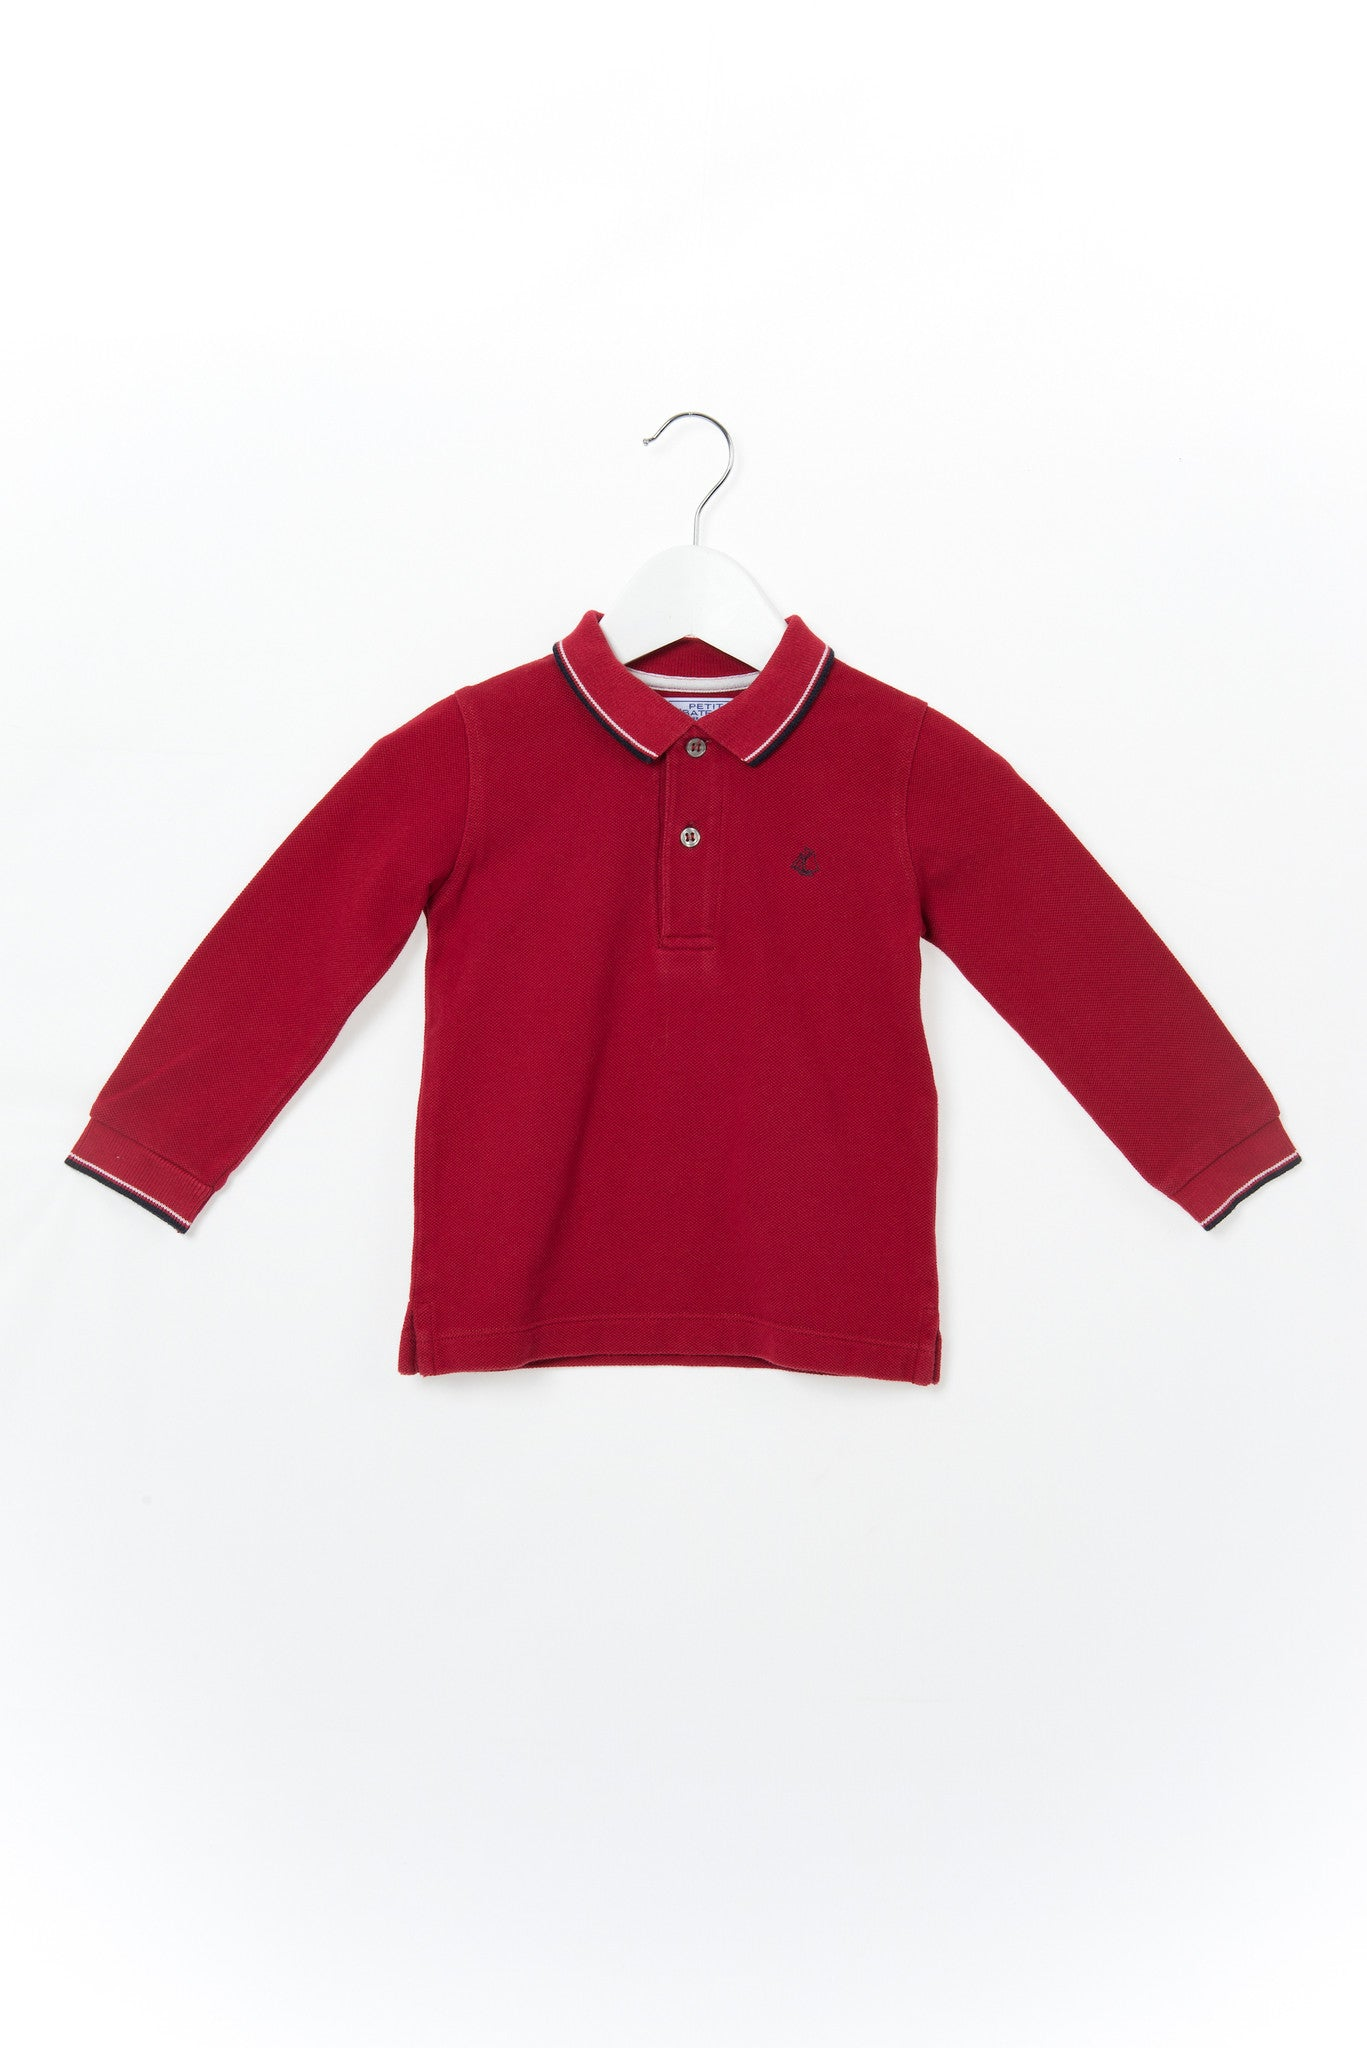 Petit Bateau at Retykle | Online Shopping Discount Baby & Kids Clothes Hong Kong